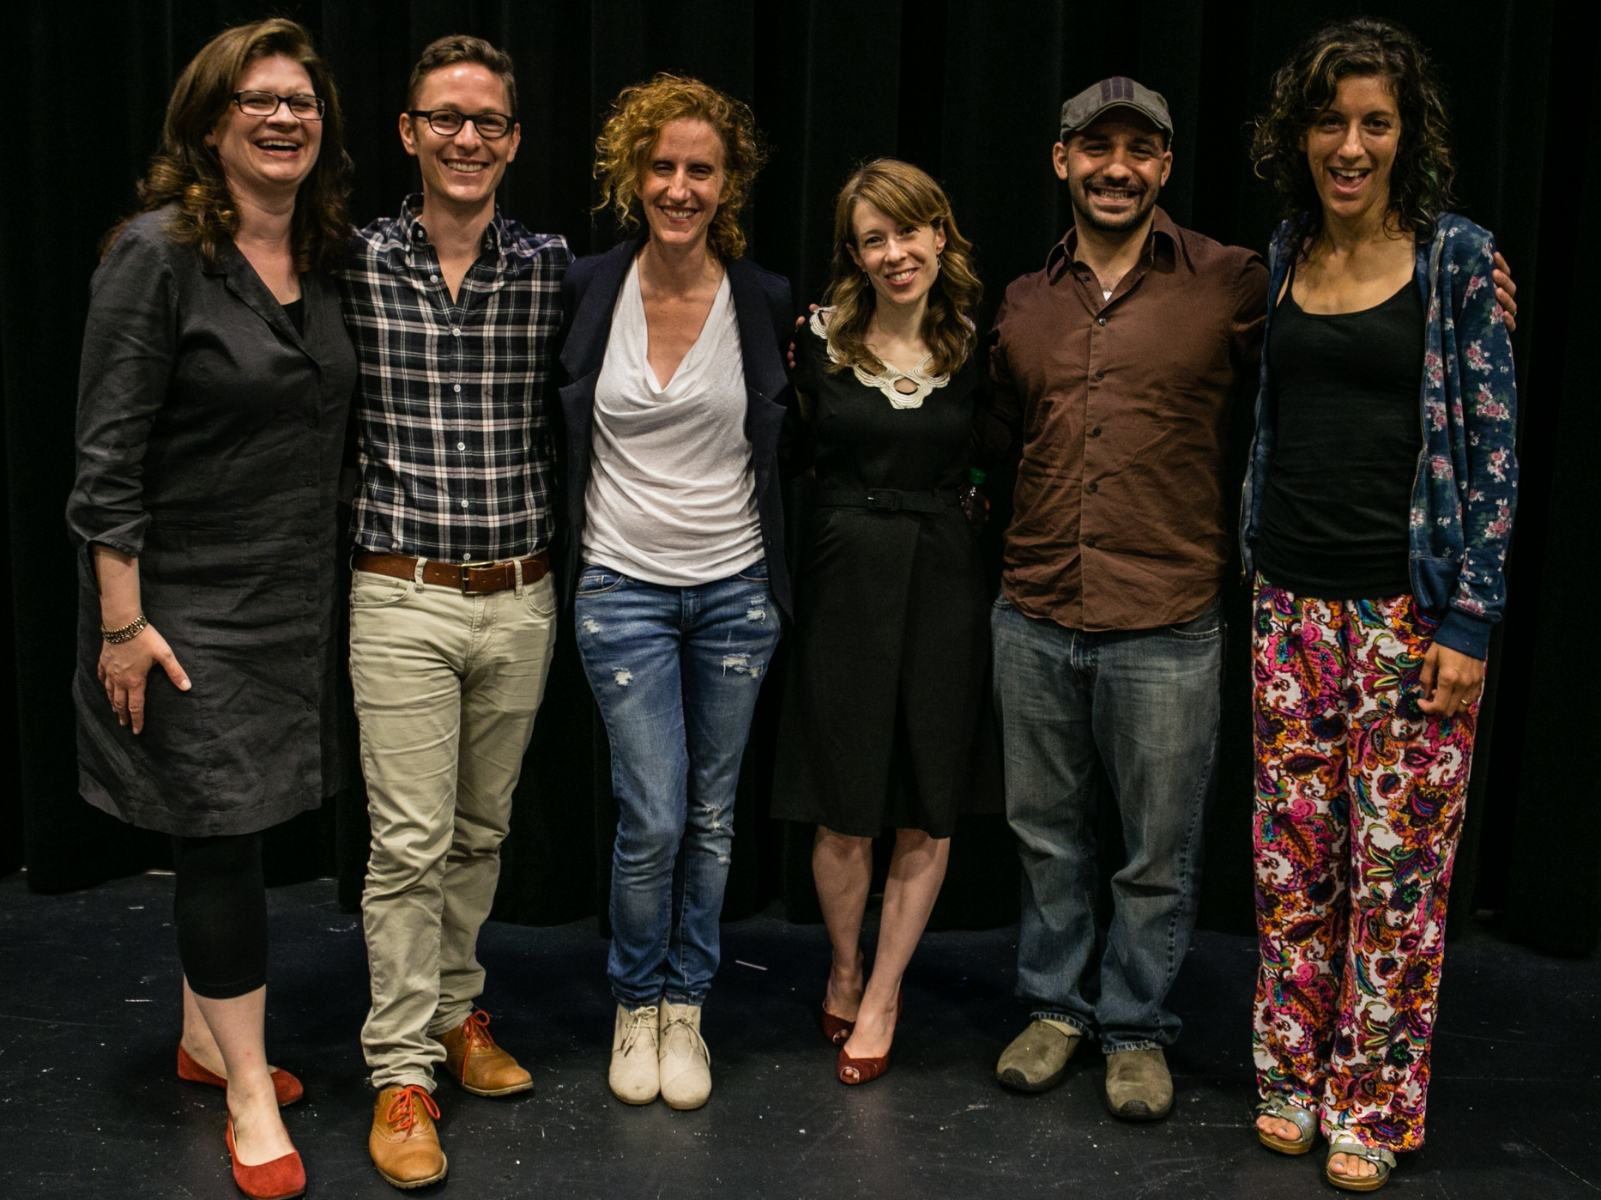 Emmy with Eliot Schrefer, Gayle Forman, Margo Rabb, Daniel José Older and Abby Sher back in June 2015